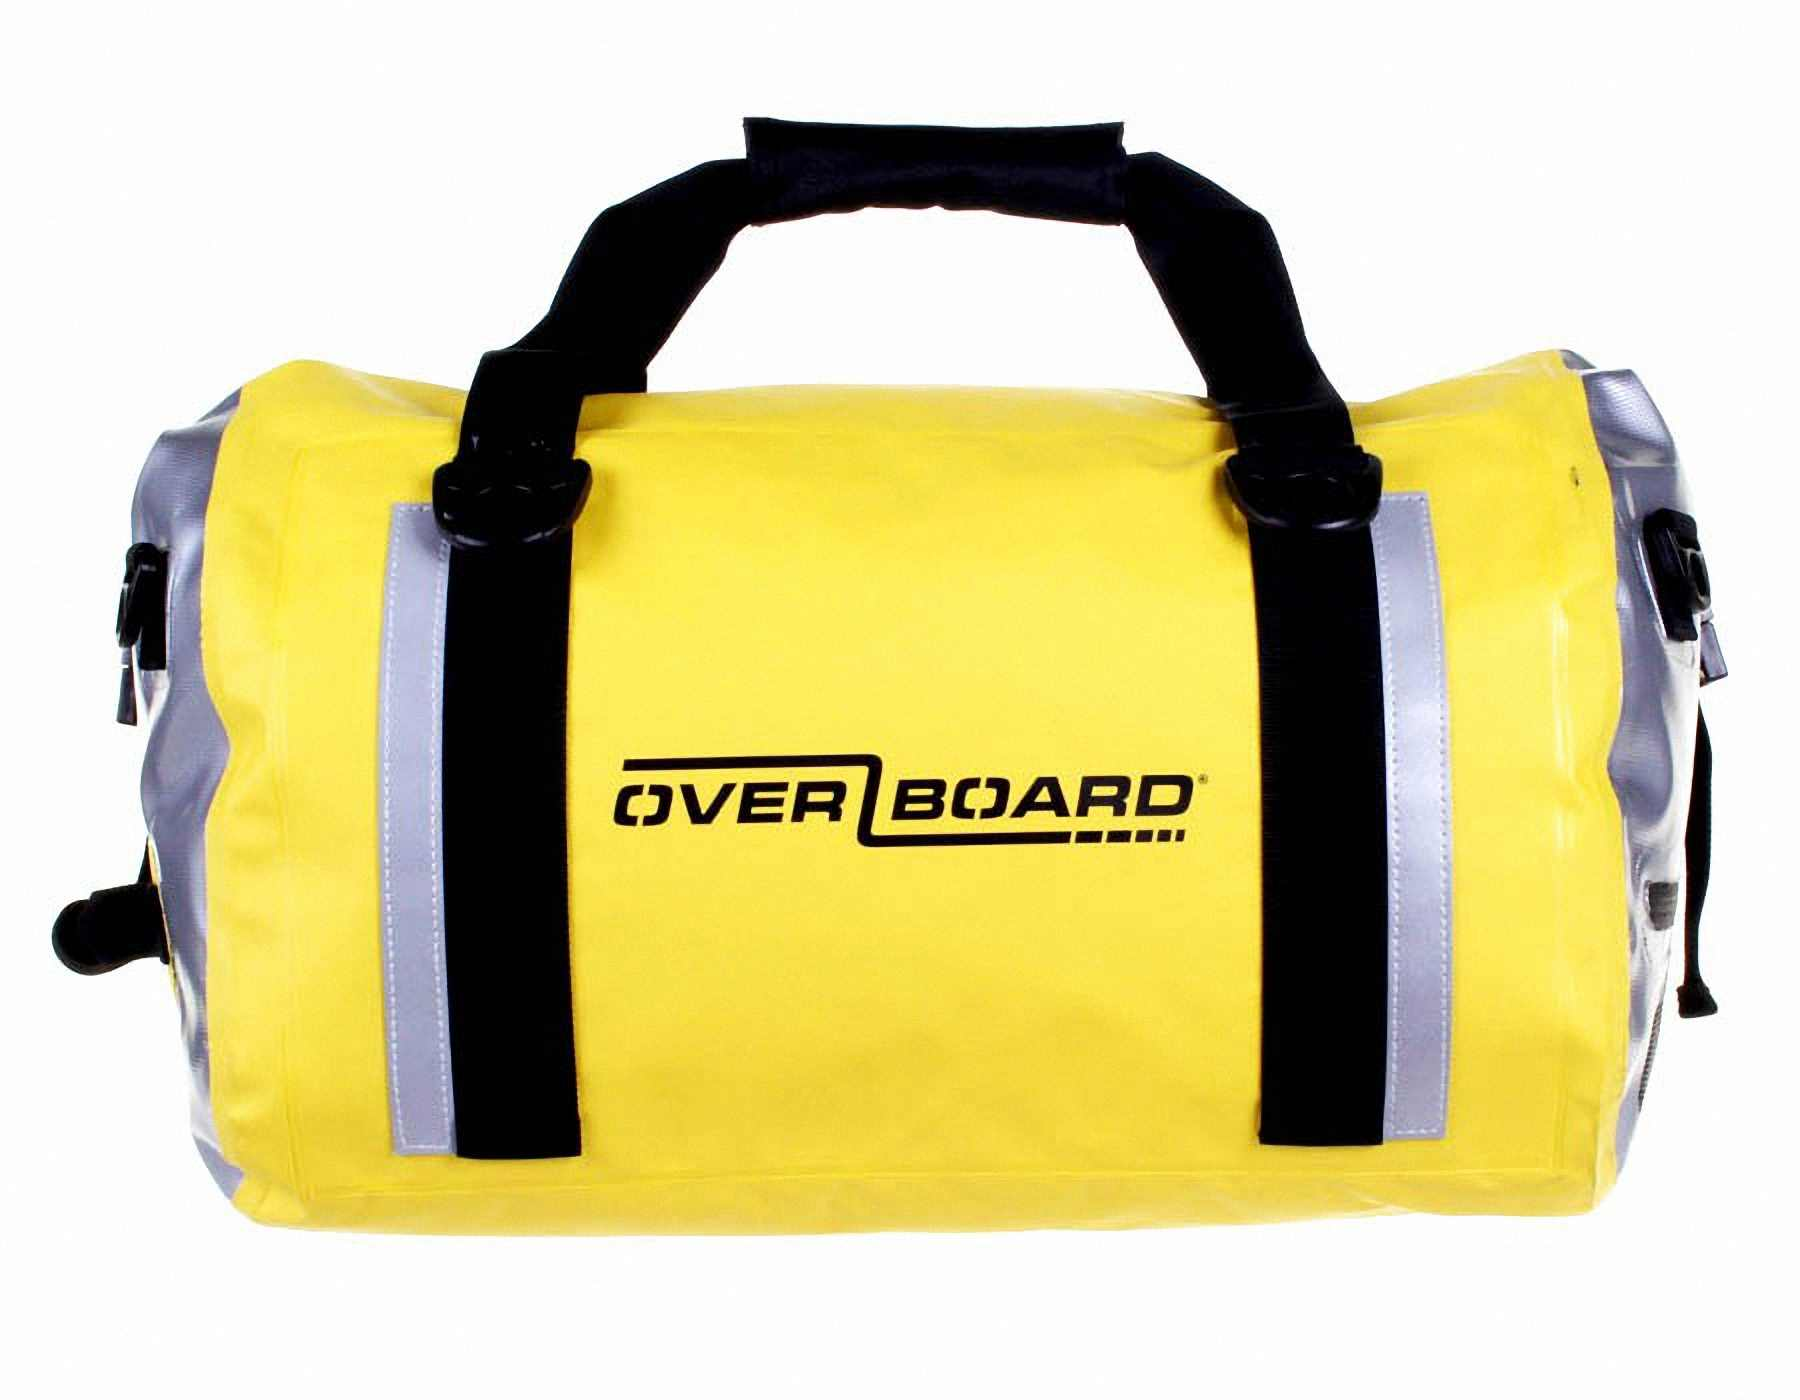 Водонепроницаемая сумка OverBoard OB1153Y - Pro-Sports Waterproof Duffel Bag - 40 литров.  Фото 5